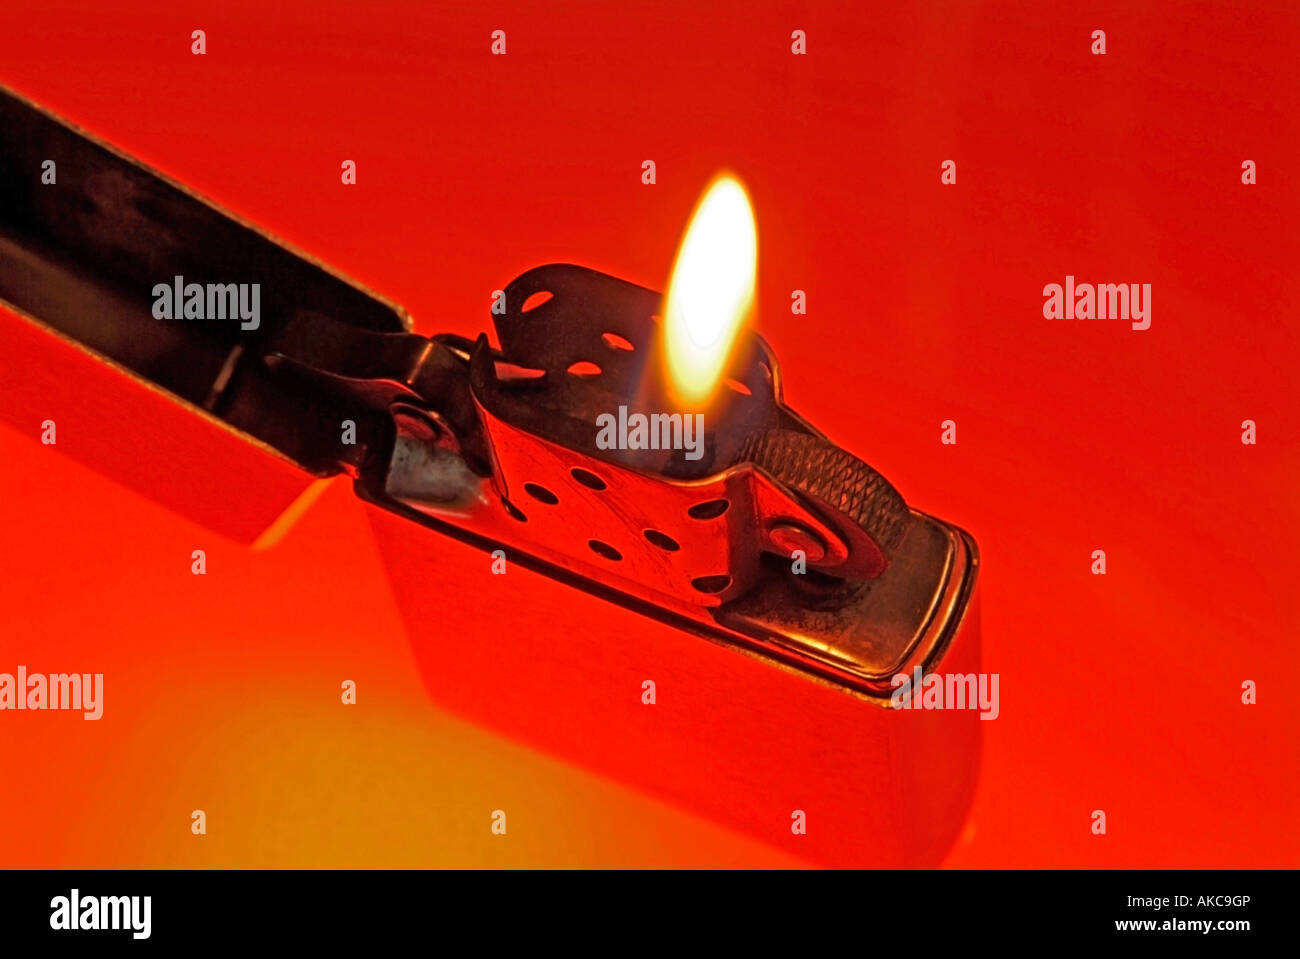 cigarette lighter Zippo with burning flame against red background - Stock Image